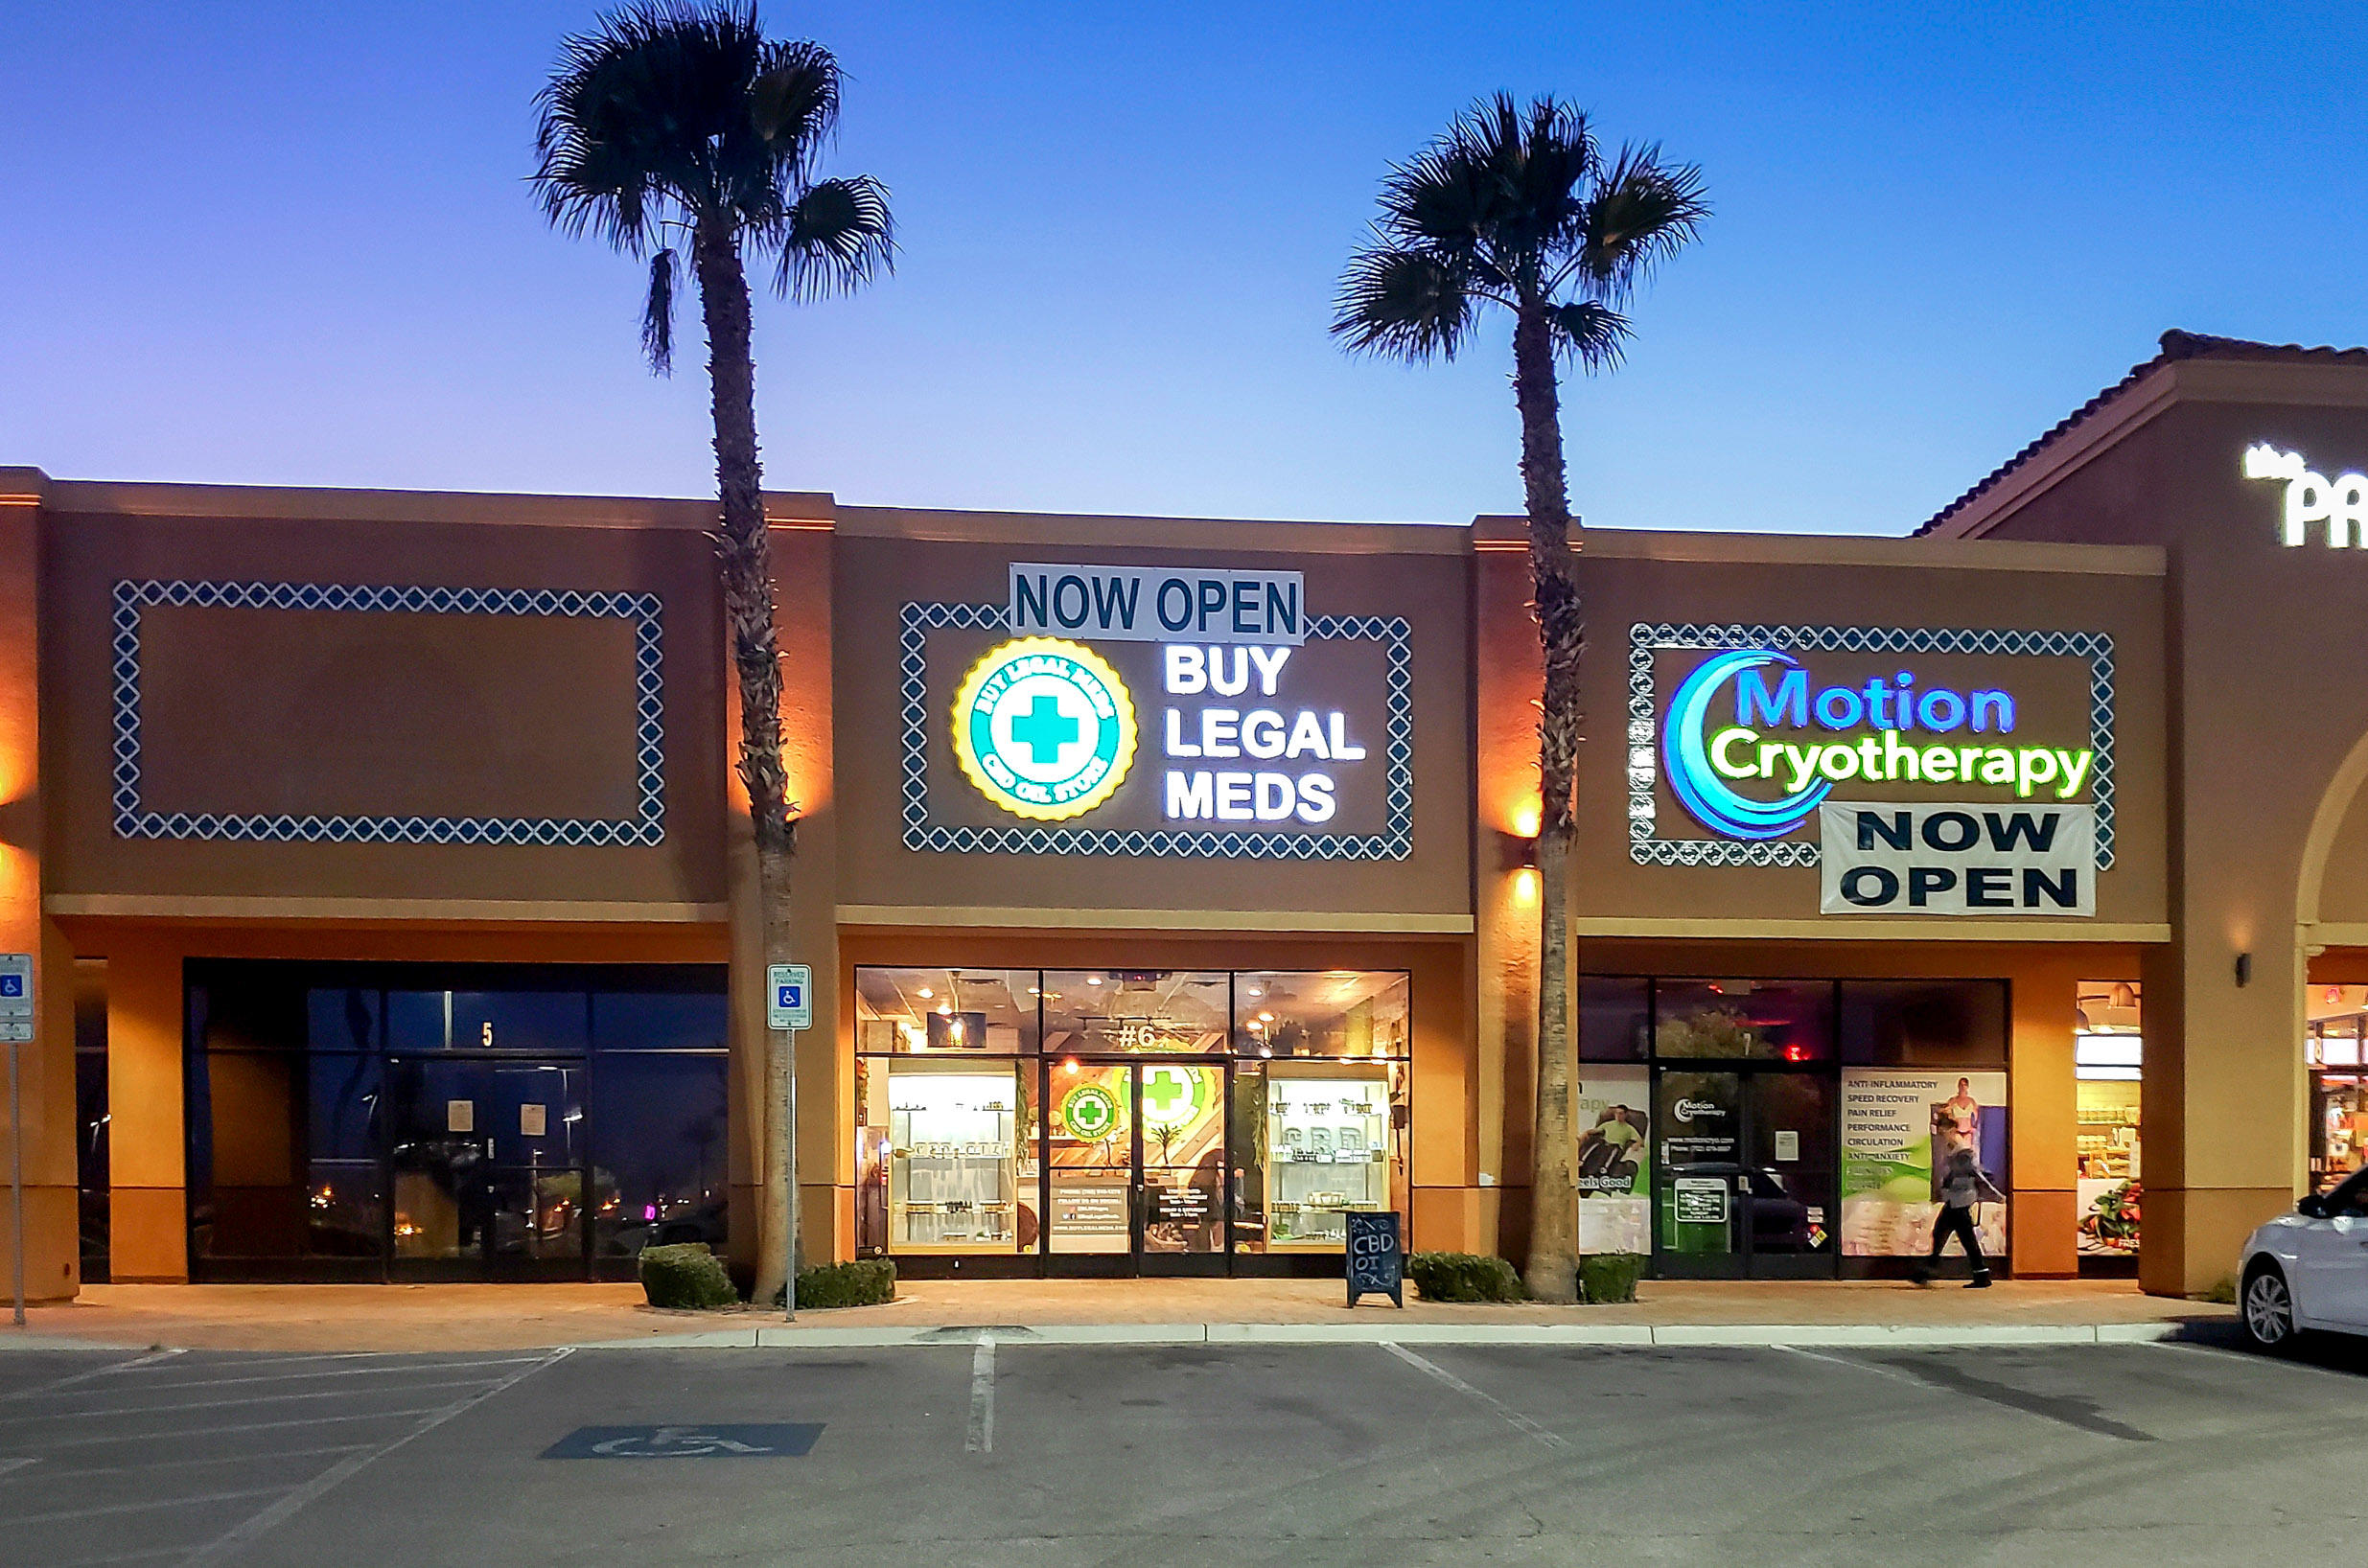 Storefront of Buy Legal Meds - CBD Dispensary on Flamingo